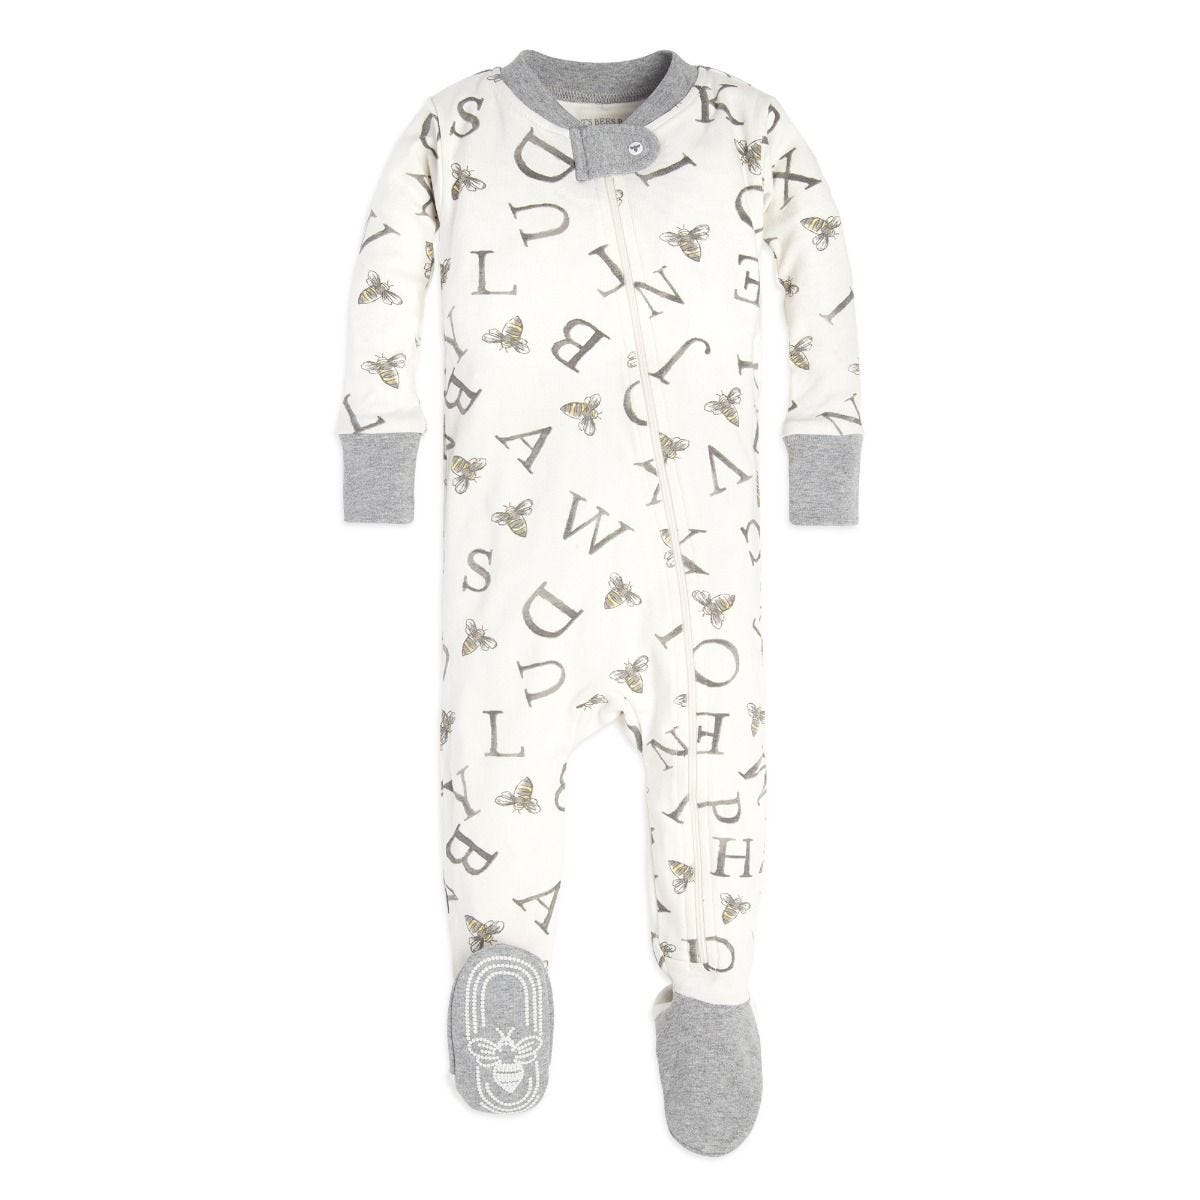 1323af458f2f4 Baby Set of 2 Organic Cotton Zip Front Footed Pajamas